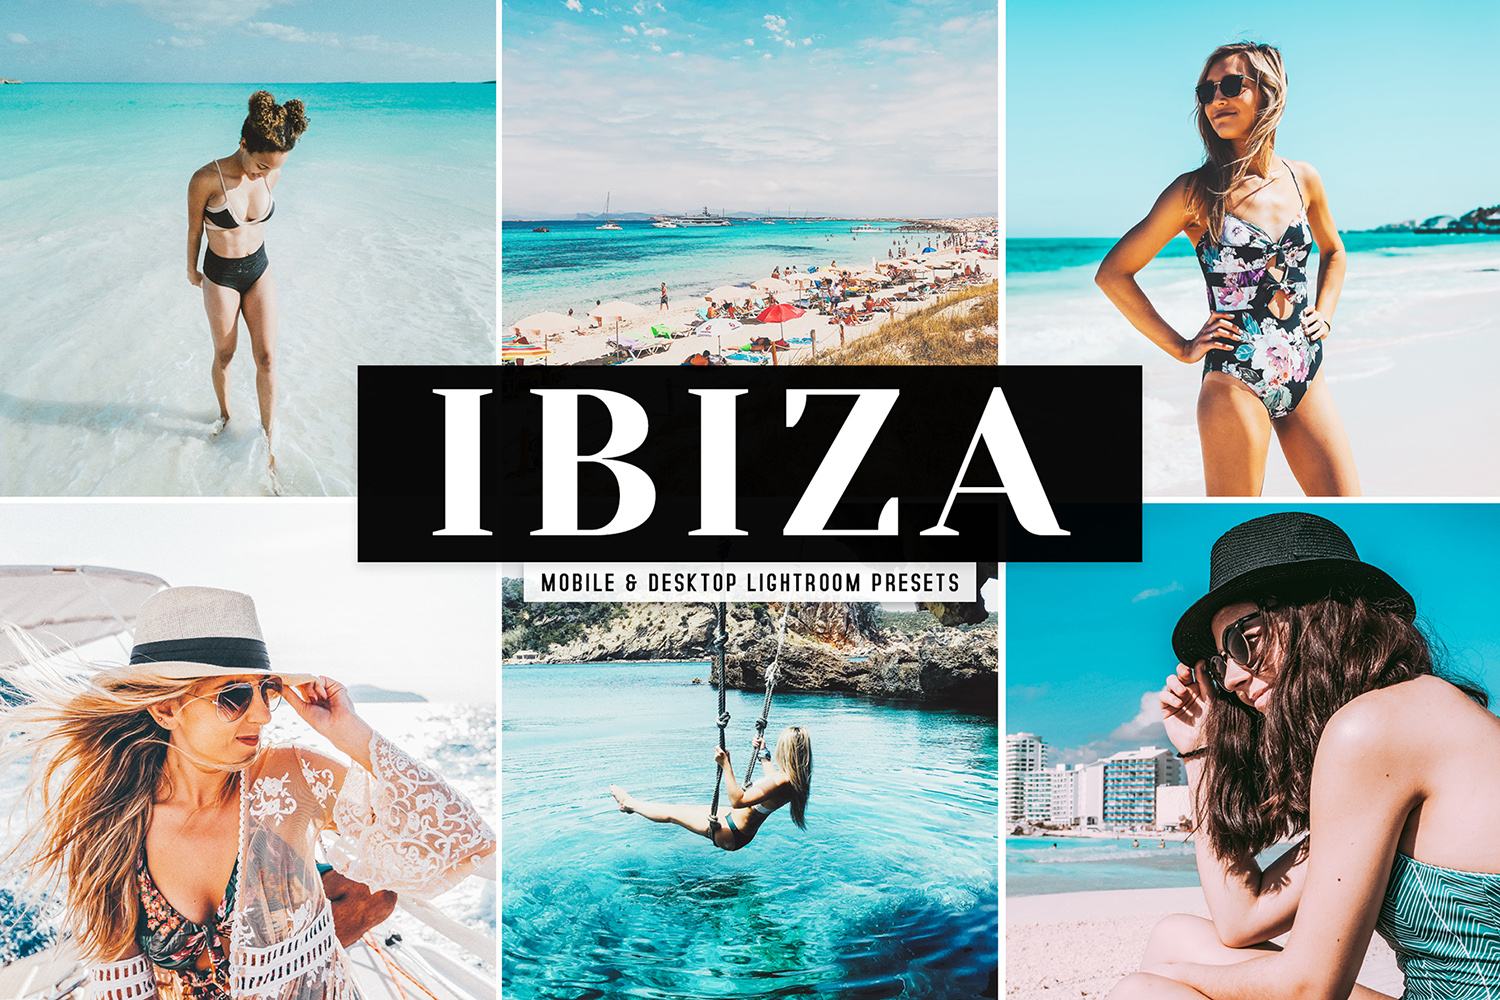 Ibiza Mobile & Desktop Lightroom Presets example image 1